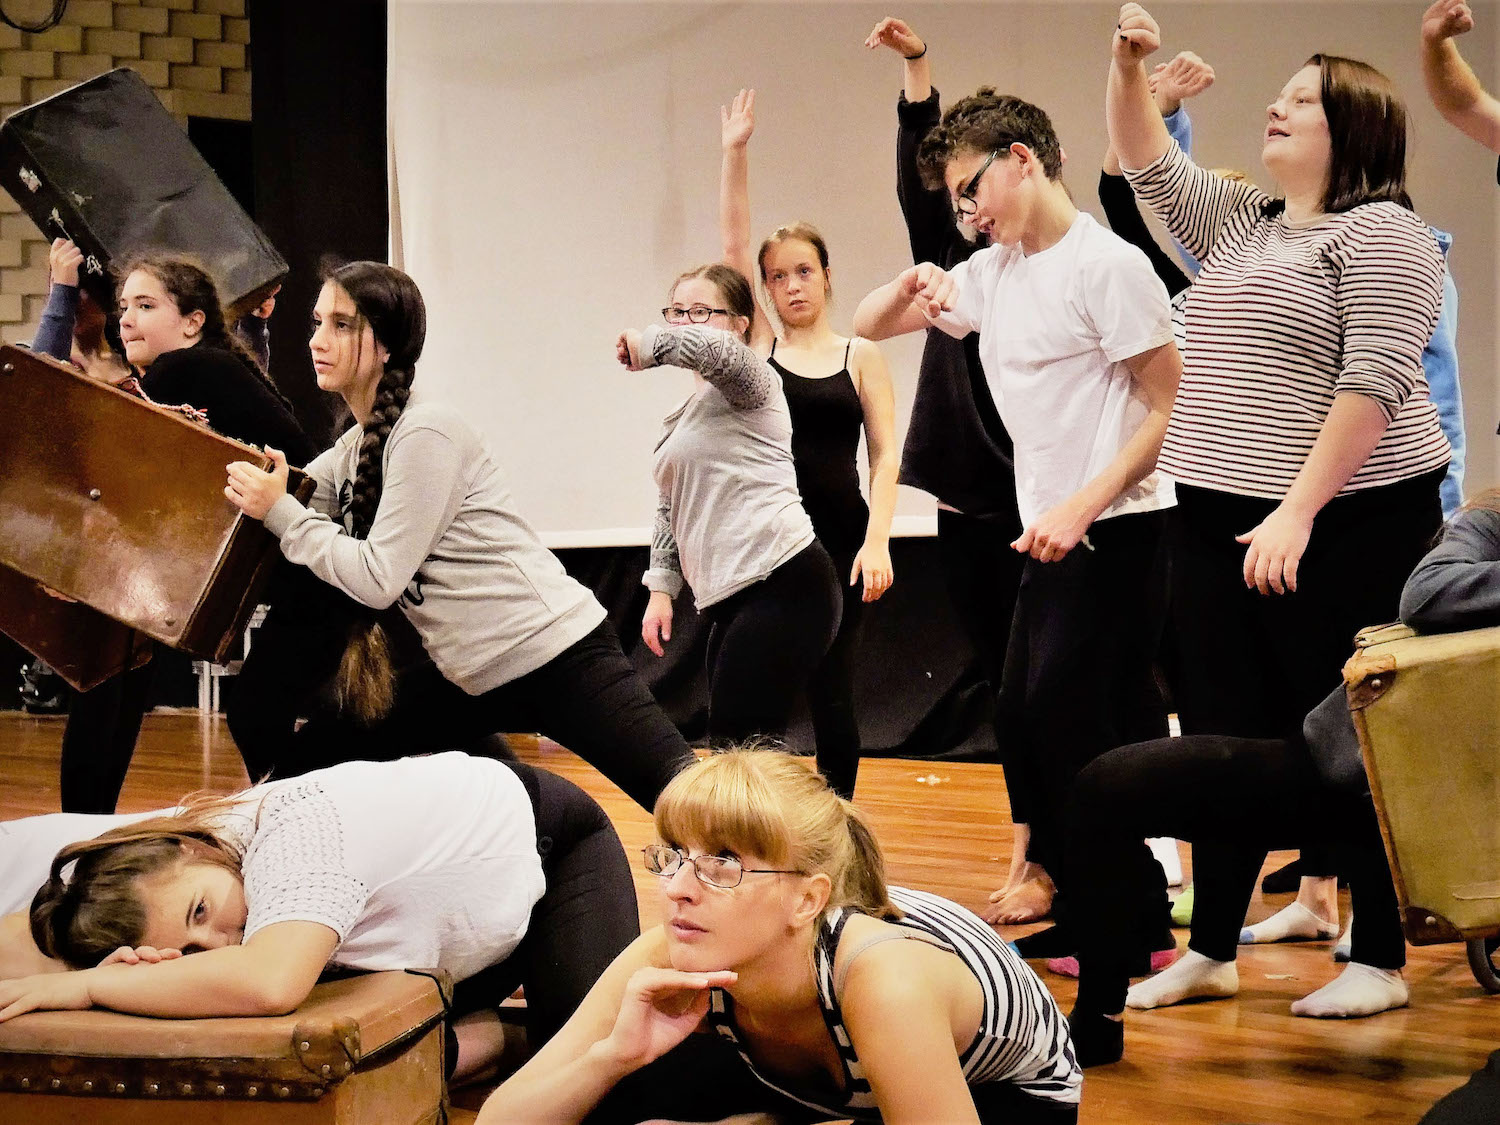 Ensemble rehearsing - some of the performers lay on the floor, hunch over suitcases and some standing with arms outreached, some looking at the time,